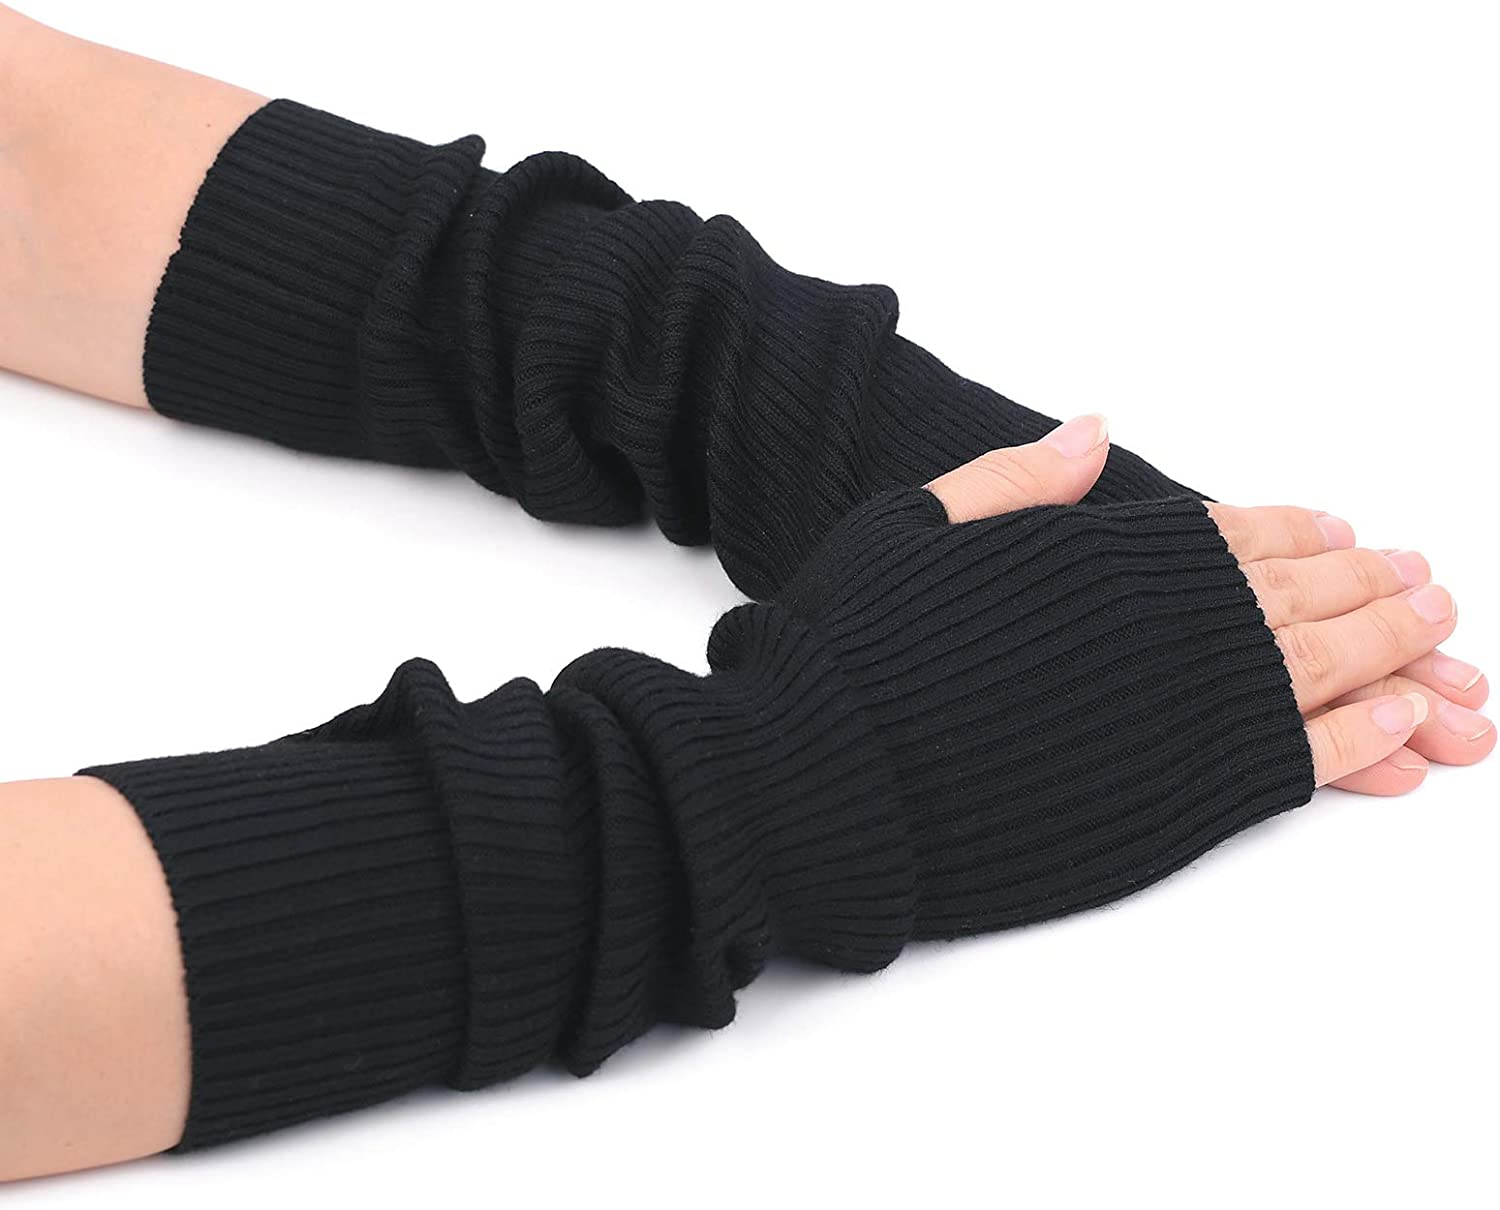 Flammi Cashmere Blend Arm Warmer Fingerless Gloves Knited Long Sleeve Mitten Gloves Wrist Warmer with Thumb Hole for Women